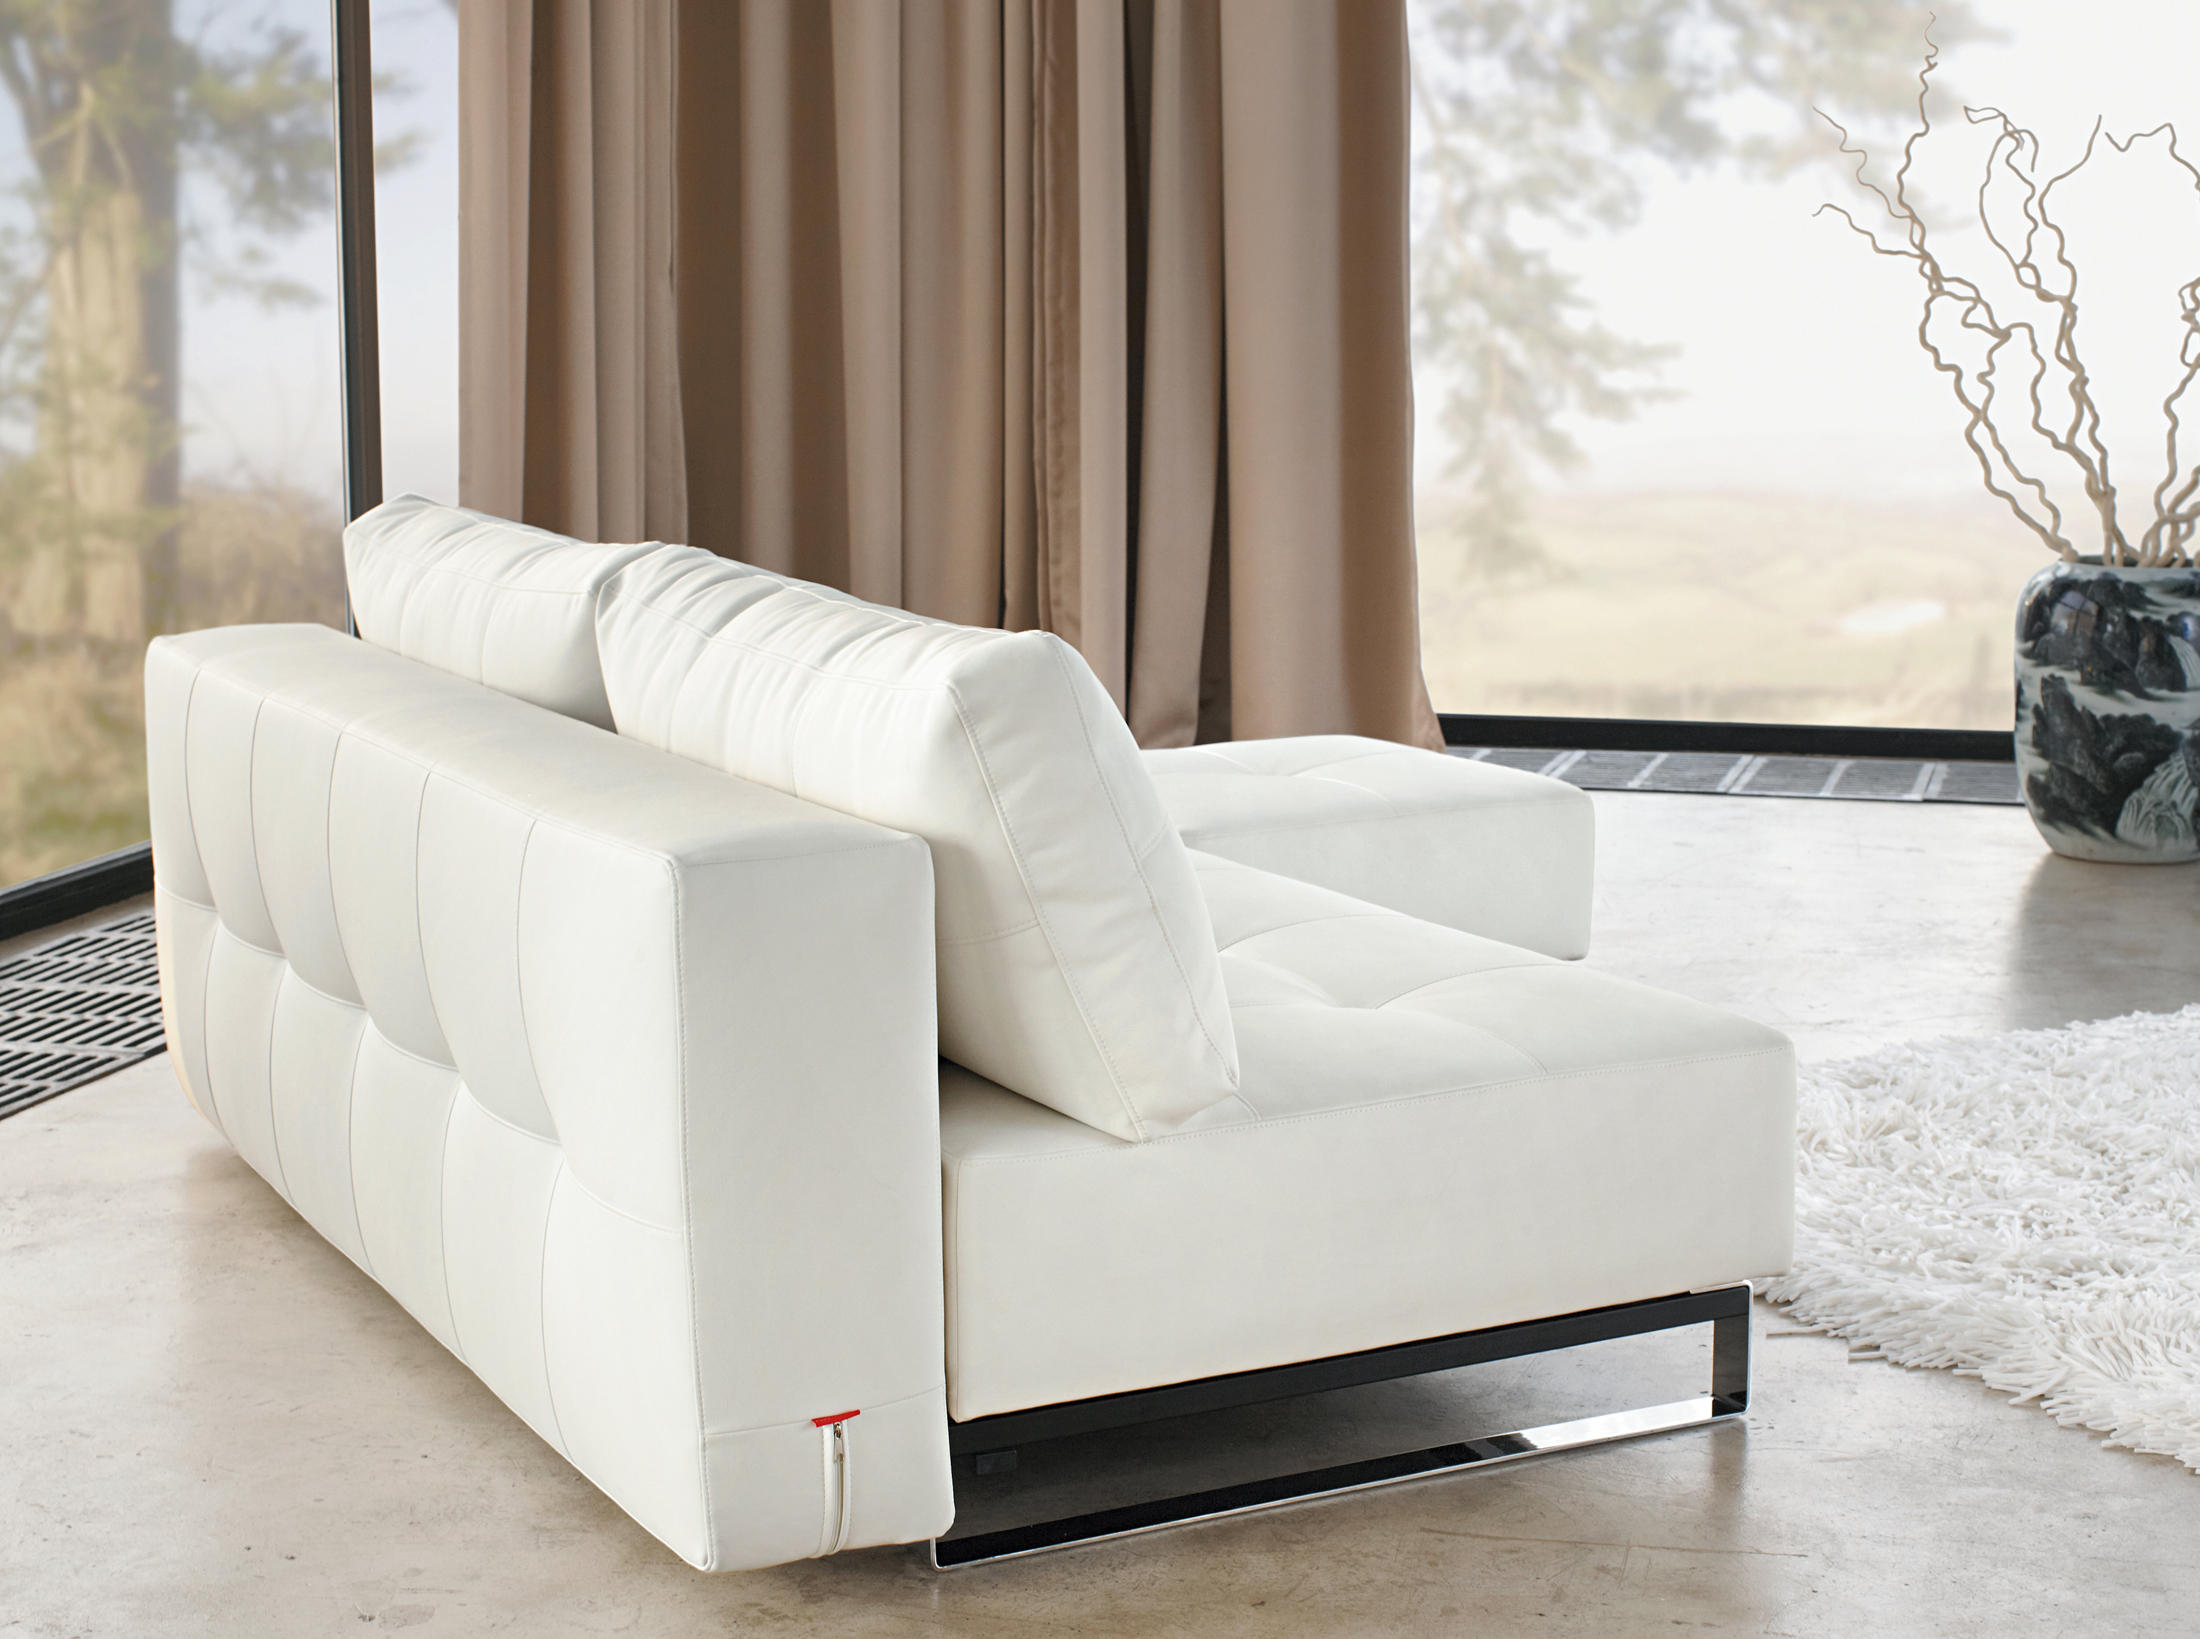 SUPREMAX DELUXE EXCESS LOUNGER - Sofas from Innovation Randers ...